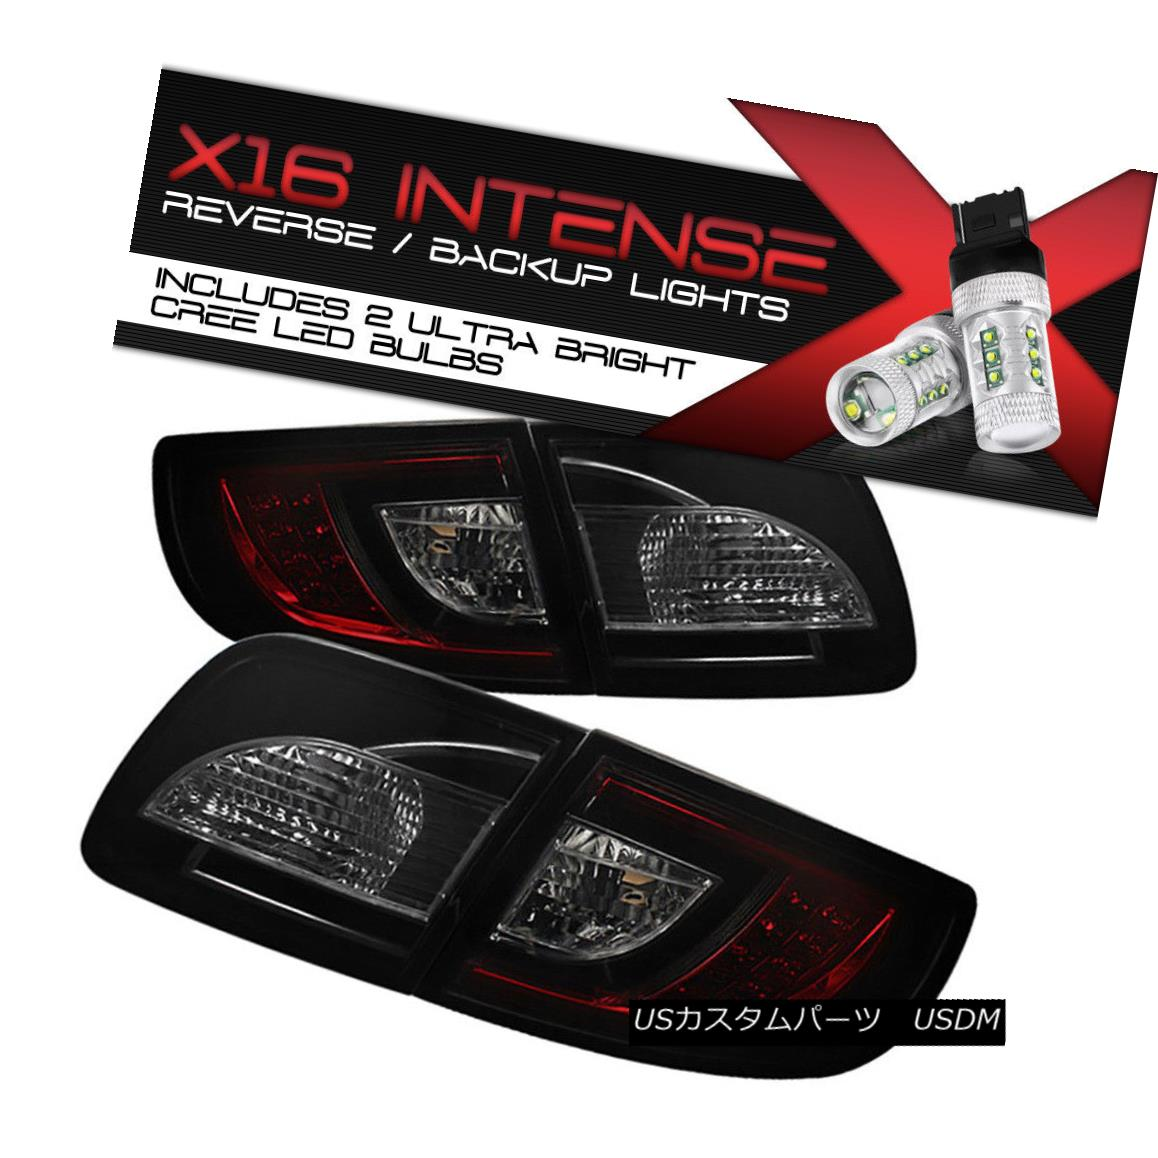 テールライト HIGH-POWER CREE REVERSE 2004-09 MaZda 3 4DR SMOKEY RED LED Tail Light Left+Right ハイパワークリーリバース2004-09 MaZda 3 4DR SMOKEY RED LEDテールライト左+右